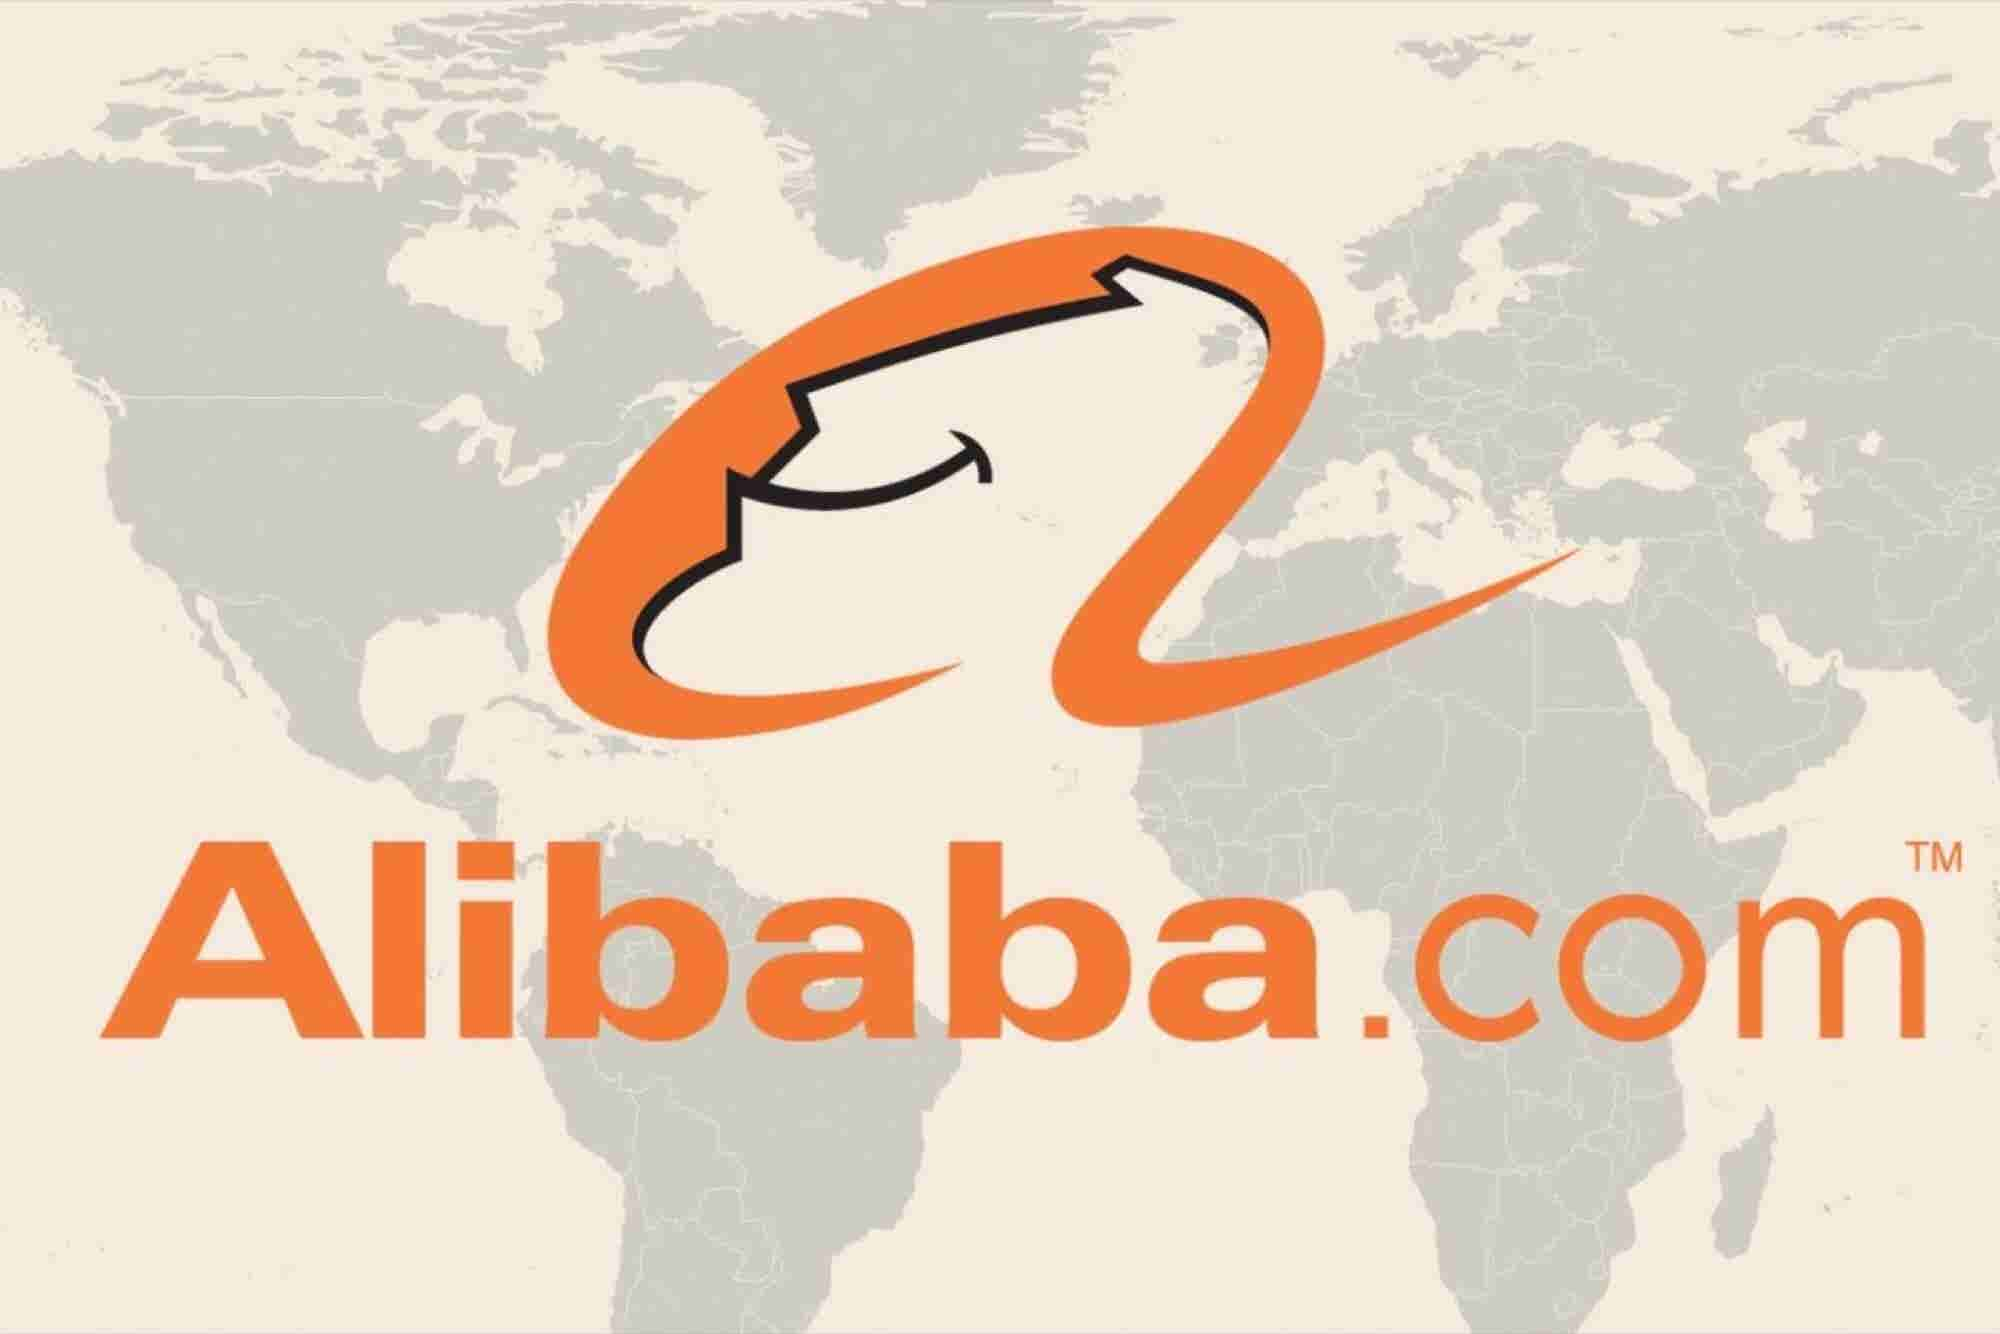 Why Alibaba's CEO Stepped Down: Weekly News Roundup